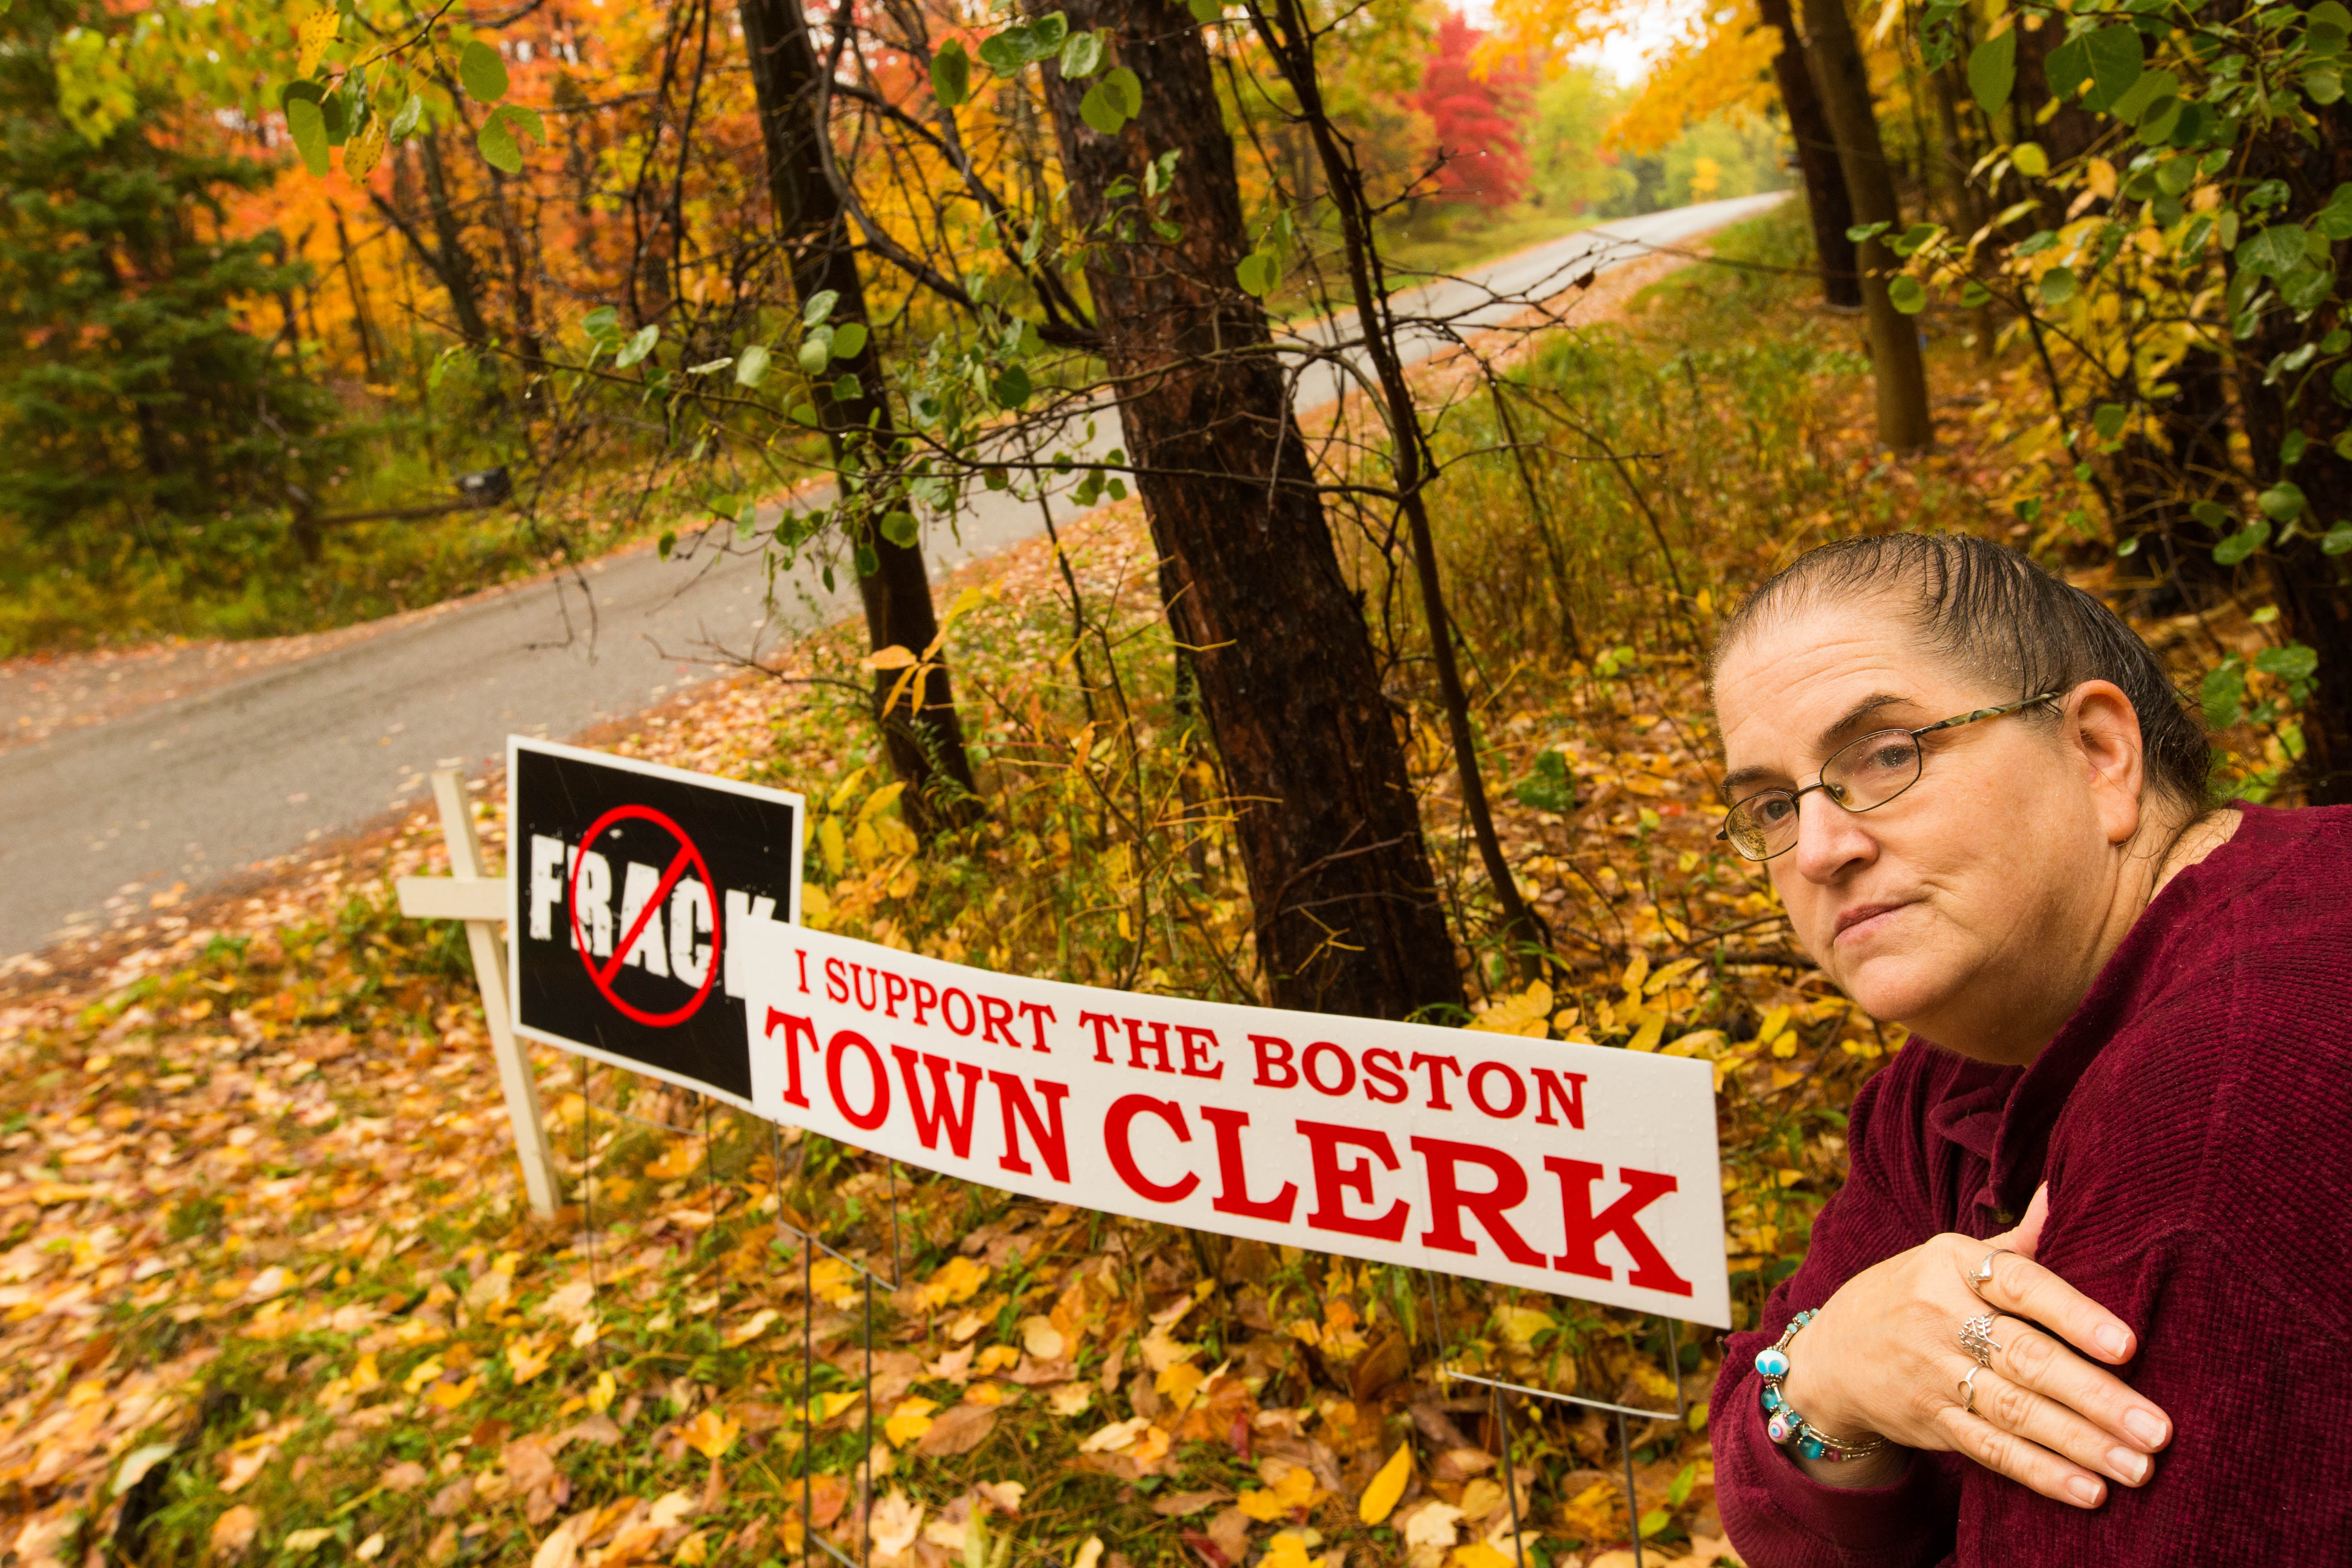 After she posted a sign supporting the Boston town clerk on her property, Barbara Moore received a summons from the Town of Boston ordering her to appear in court for violating the town's temporary sign ordinance.  She says she was not required to pay the $10 fee for her 'No fracking' sign. (Derek Gee/Buffalo News)